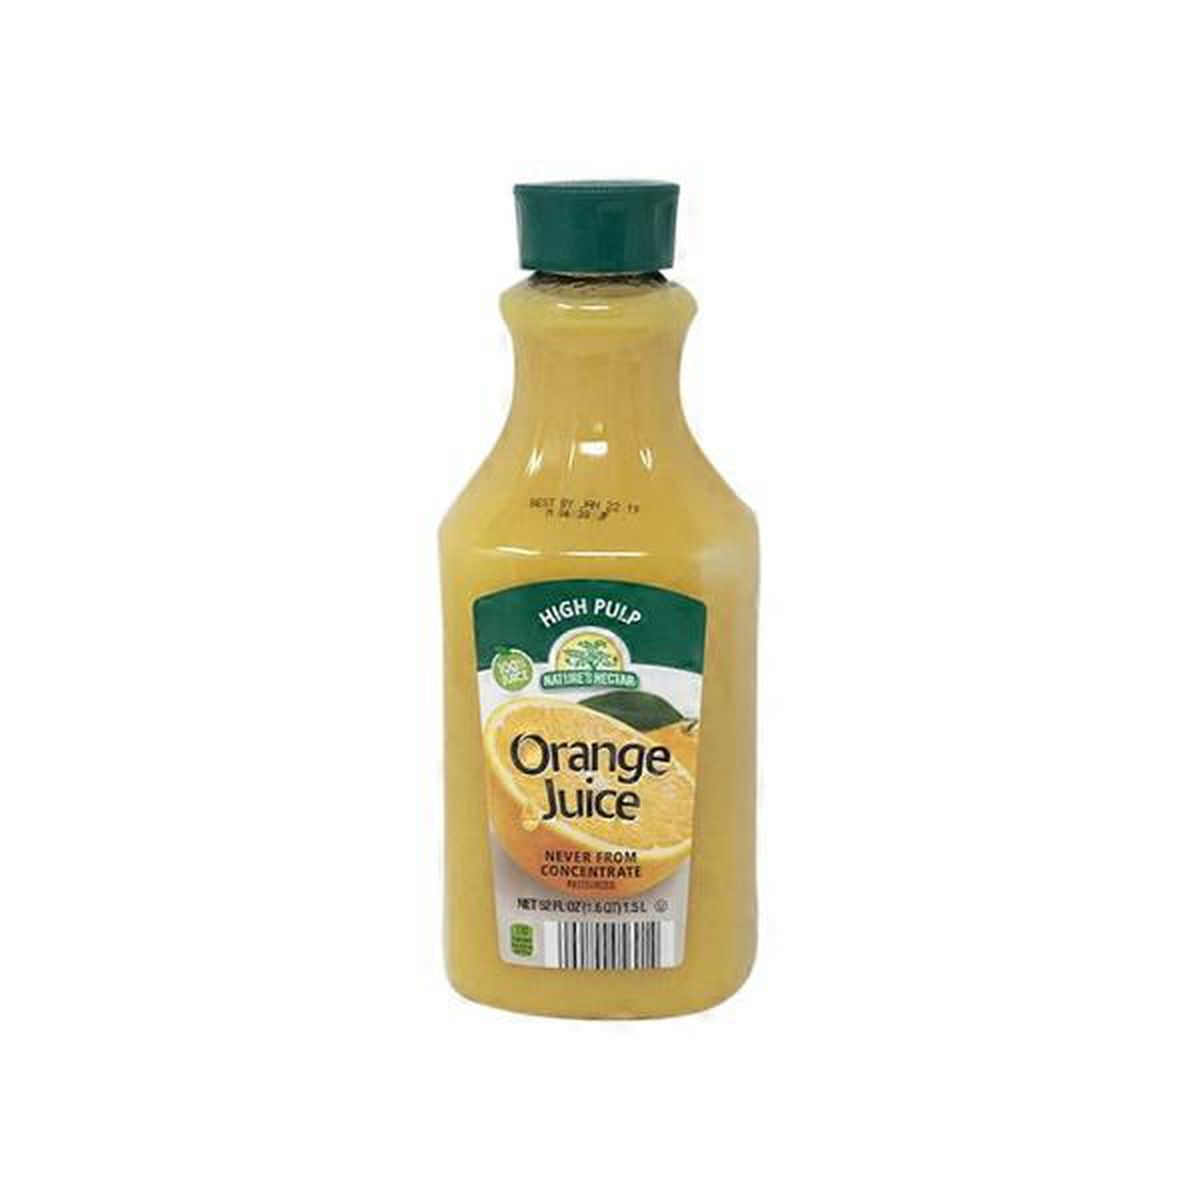 100% Pure Squeezed Orange Juice - Not From Concentrate, with Pulp